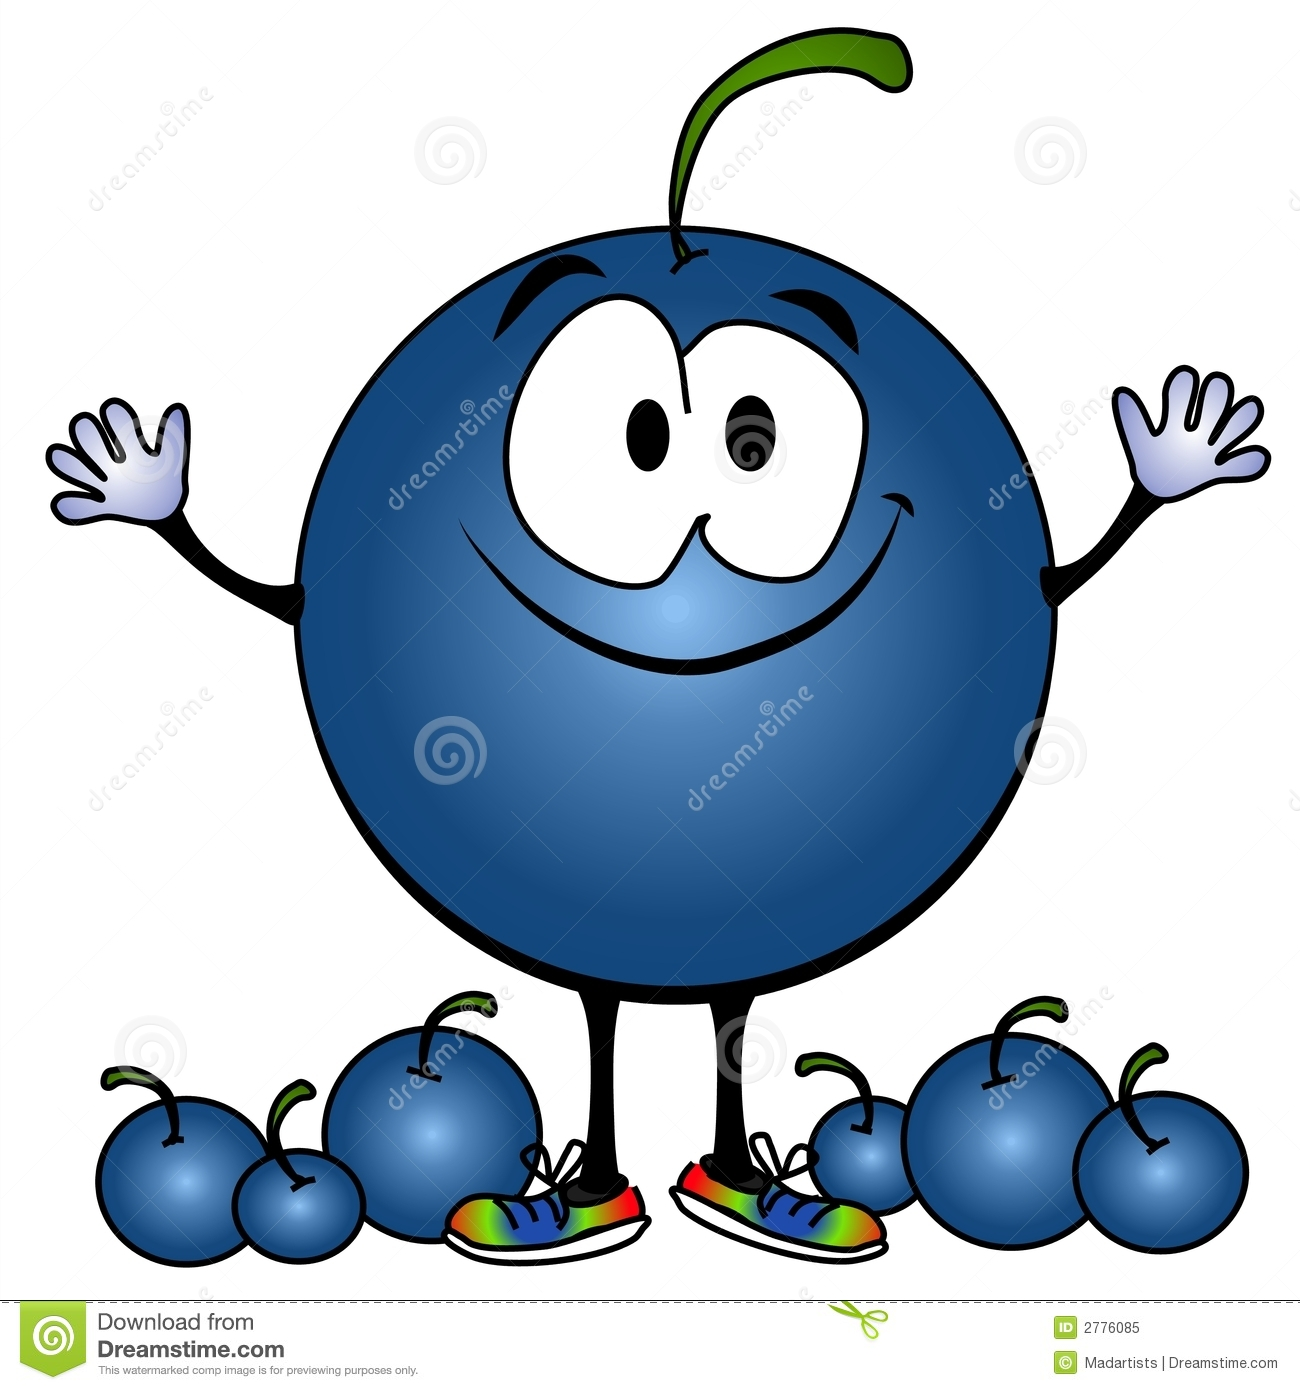 Smiling Blueberry Cartoon Face Royalty Free Stock Photo.